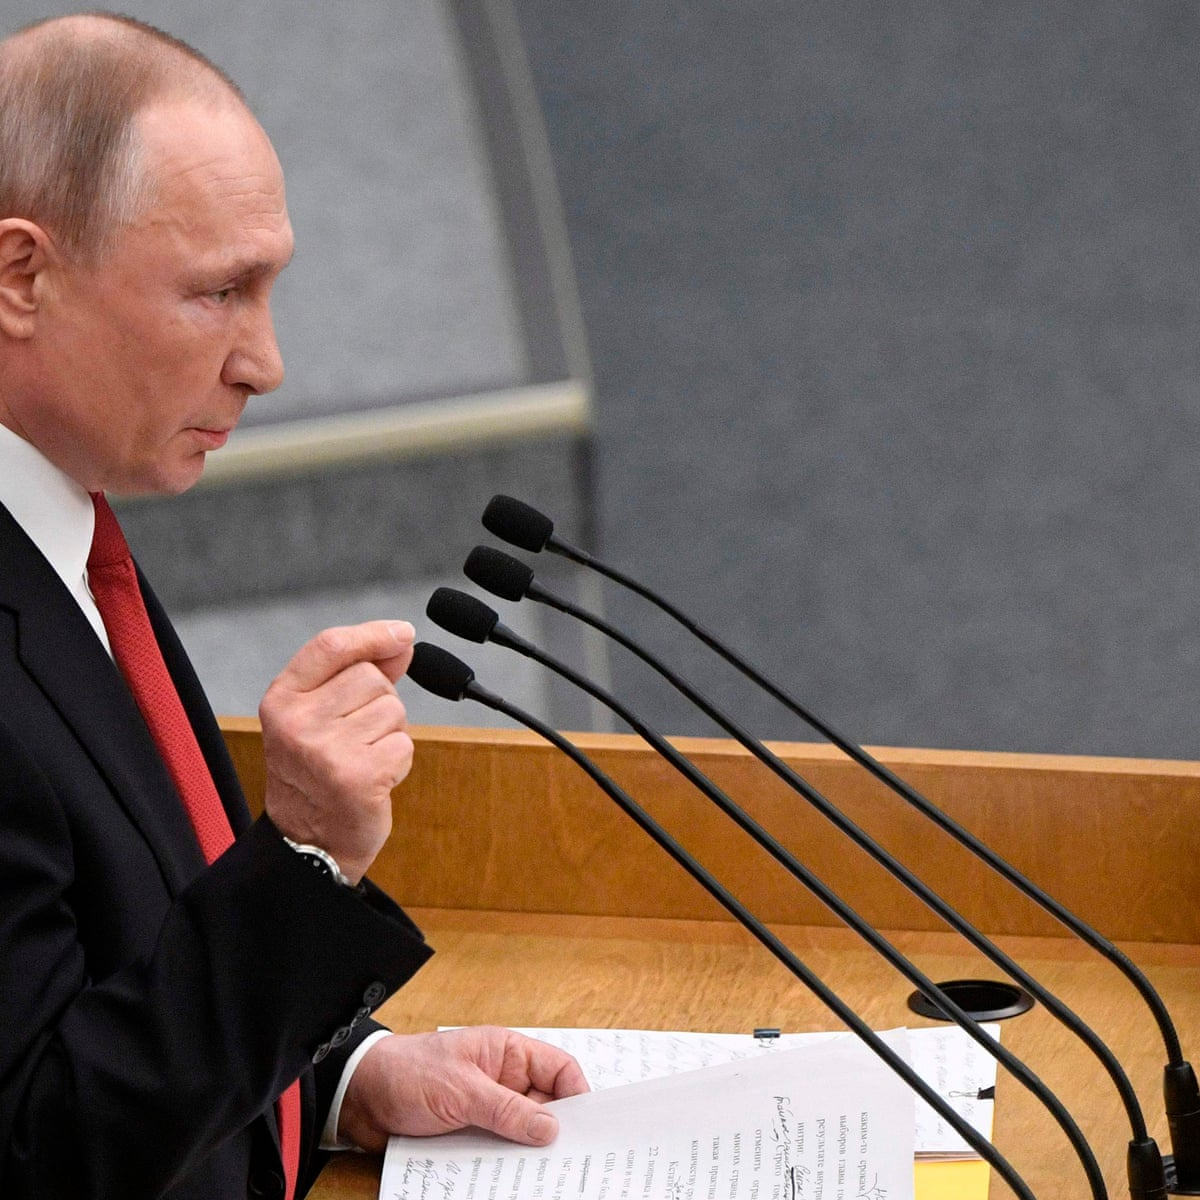 Putin Backs Proposal Allowing Him To Remain In Power In Russia Beyond 2024 Vladimir Putin The Guardian